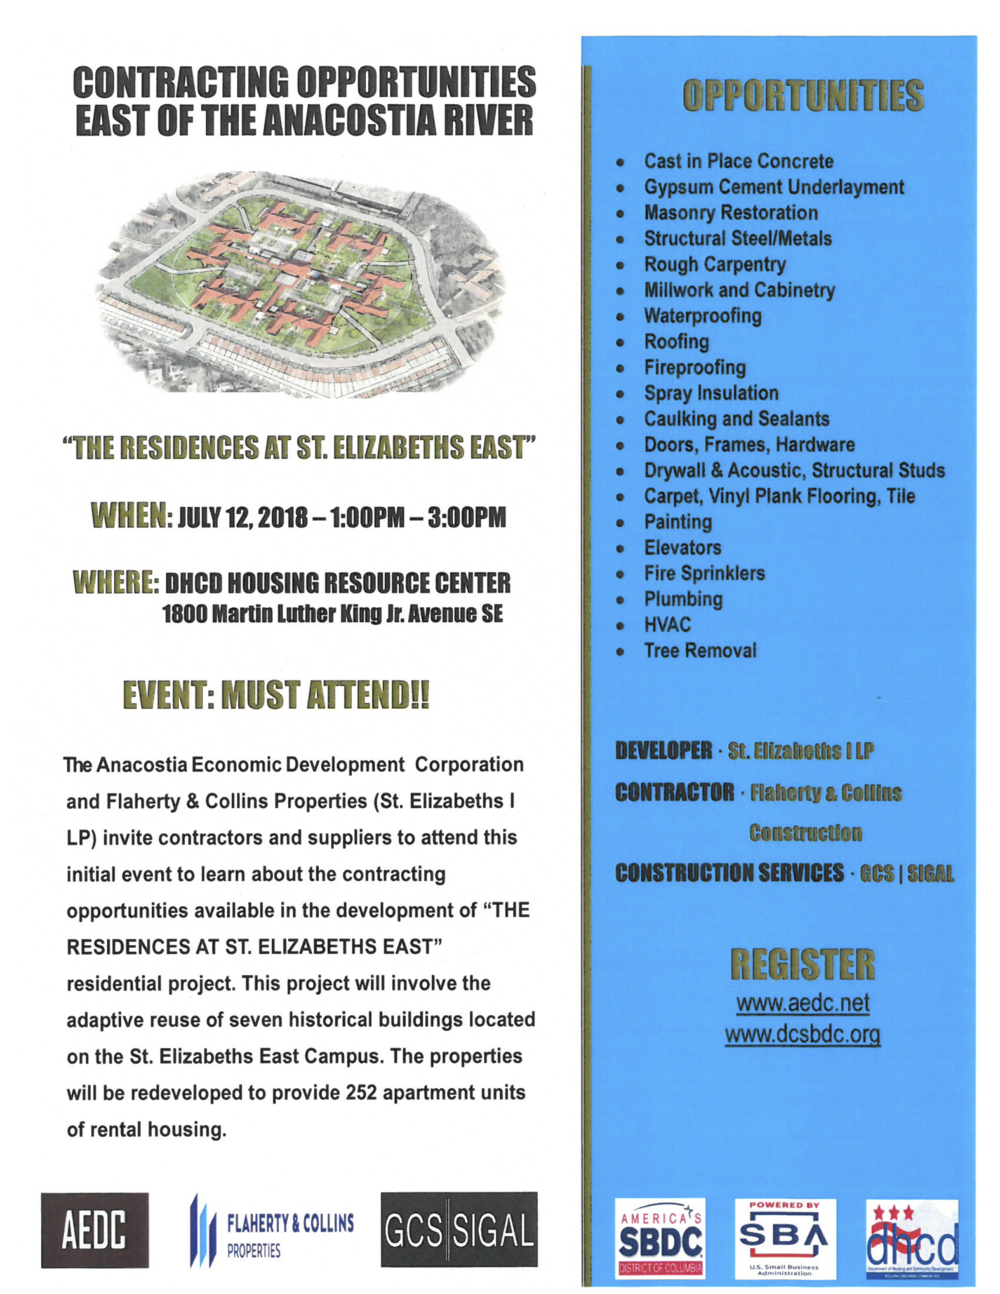 Flyer+-+Contracting+Opportunities+-+The+Residences+at+St.+Elizabeths+East+-.png